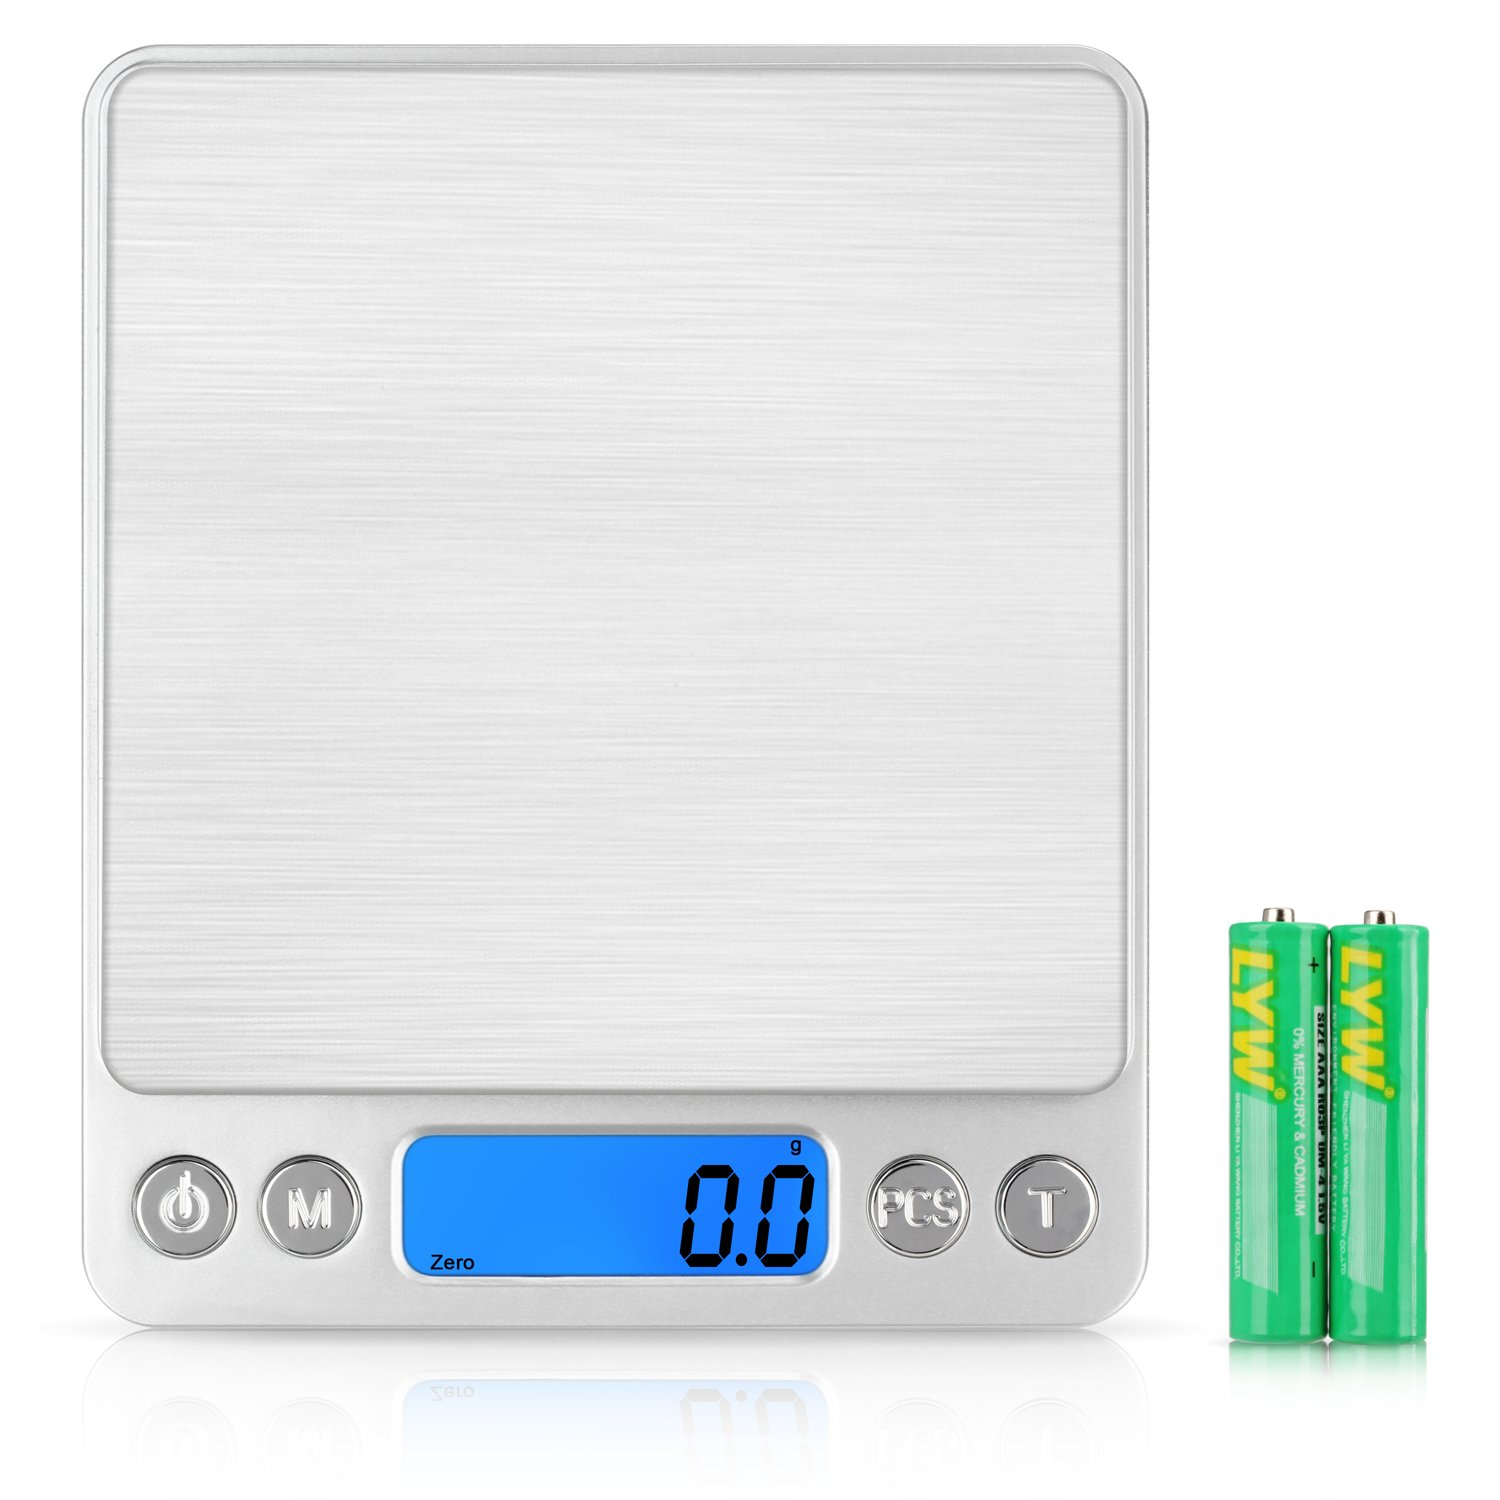 Shine hai digital kitchen scale stainless steel high precision pocket food scale 0 1g 3000g multifunctional pro scale with back lit lcd display tare